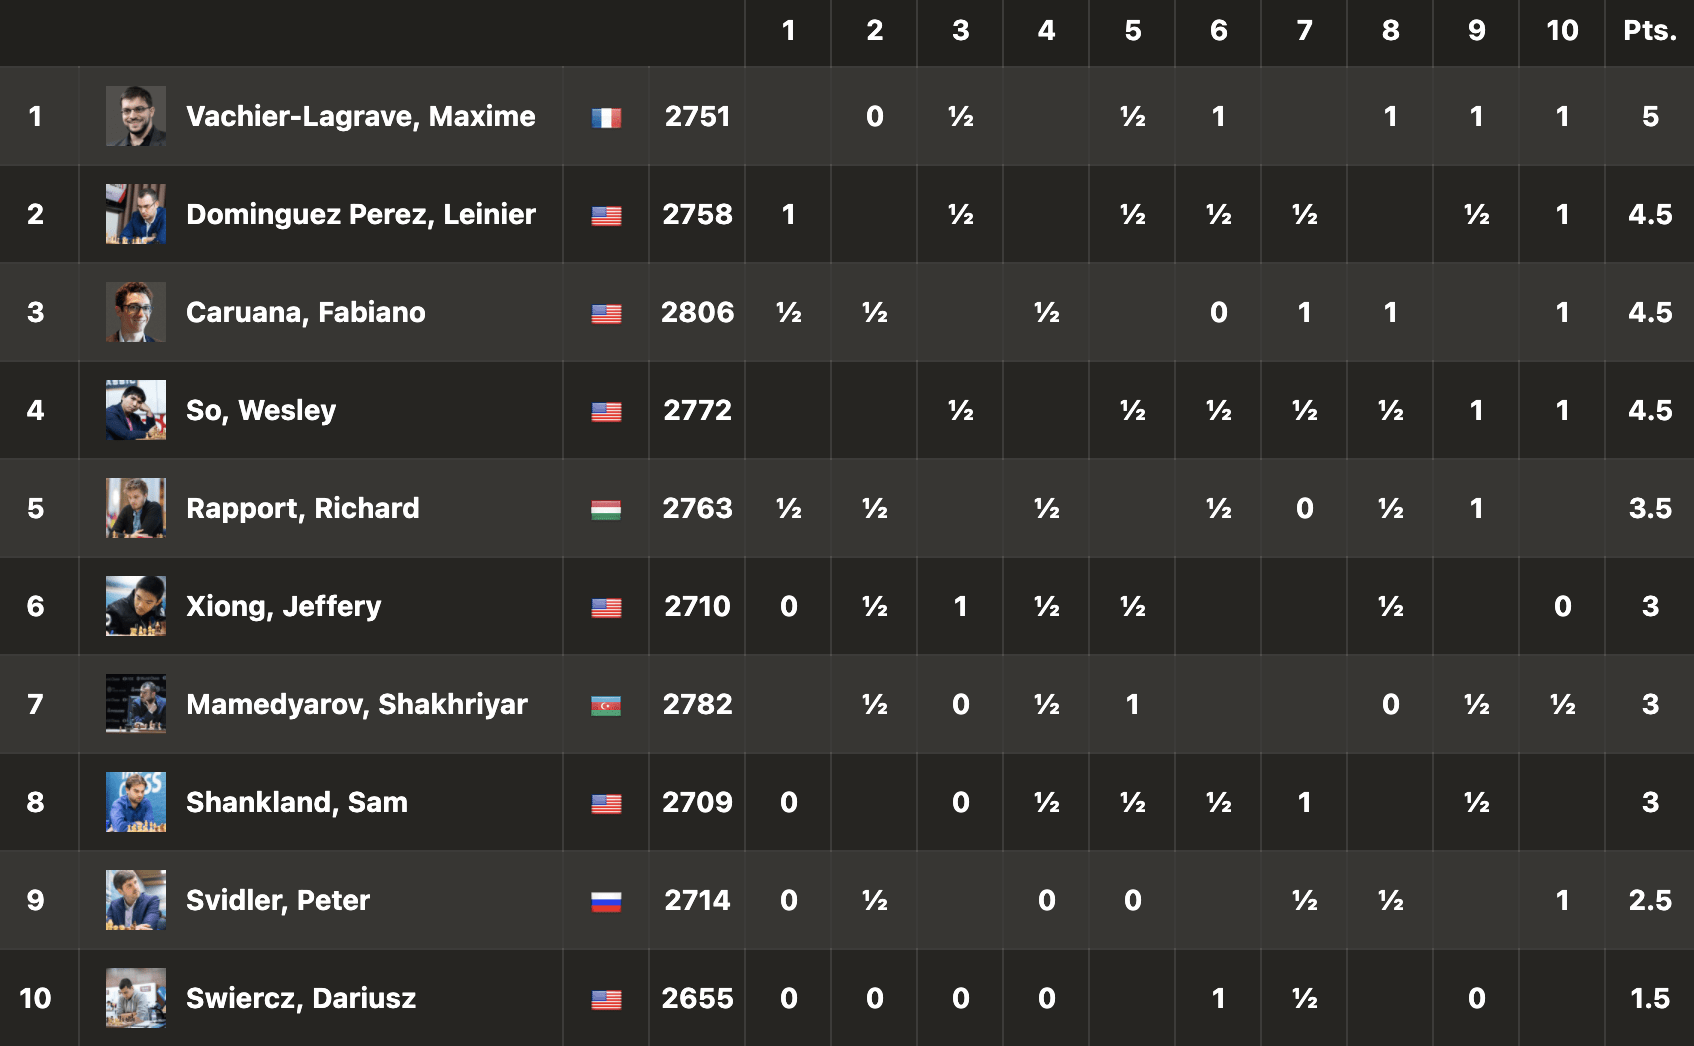 Ranking of the 7th round of sinquefield 2021